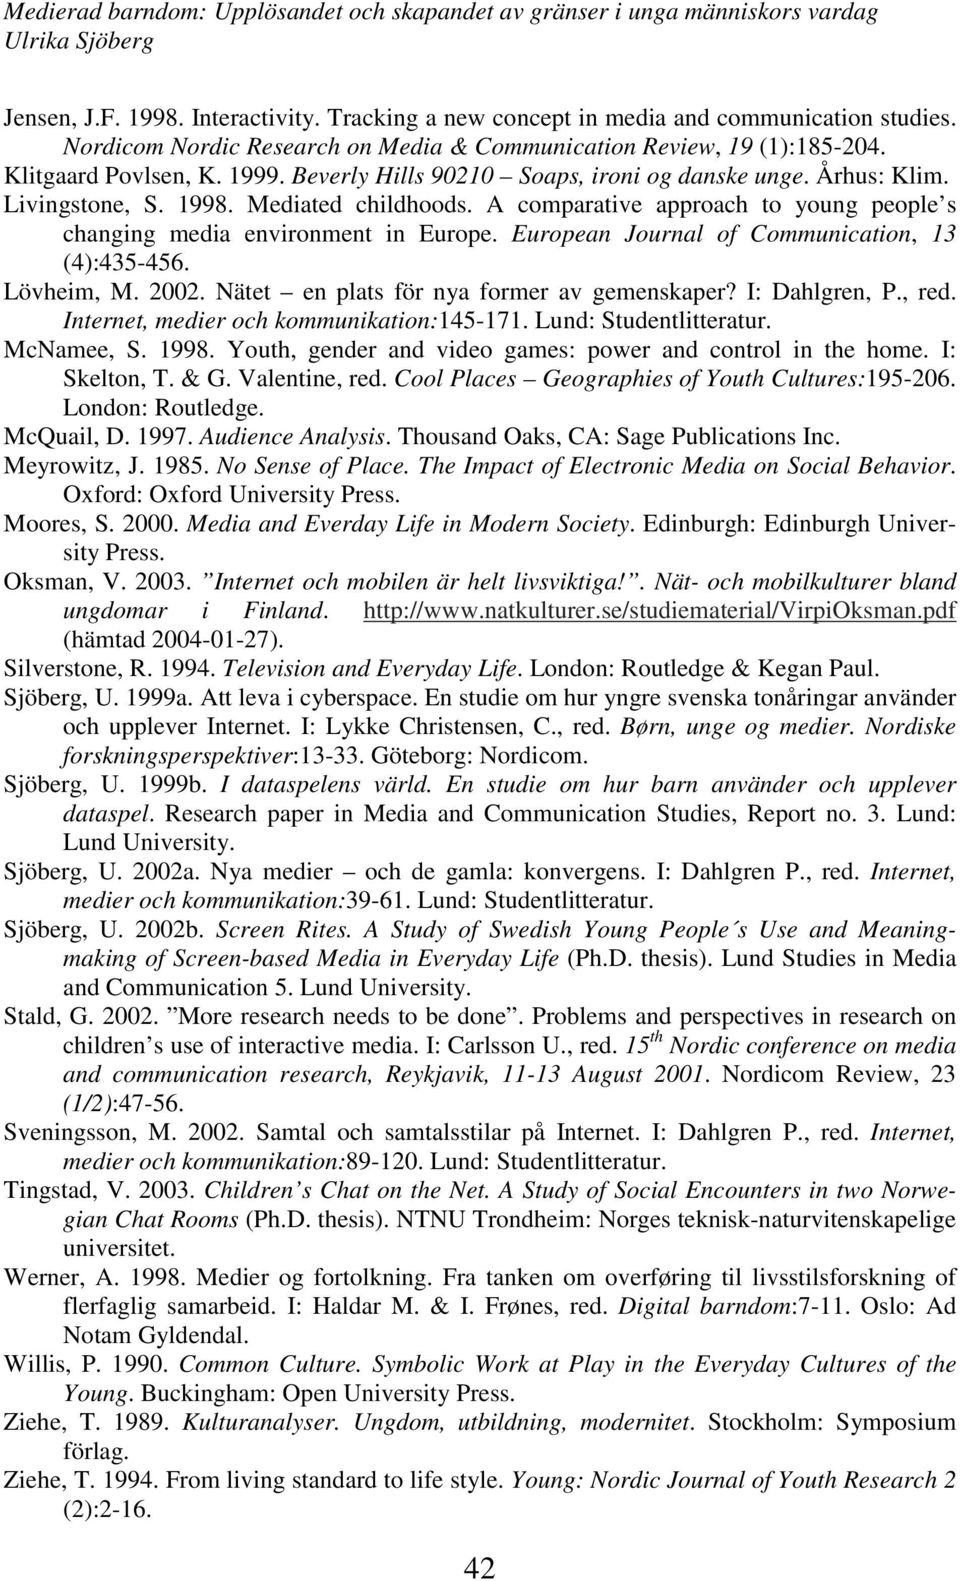 European Journal of Communication, 13 (4):435-456. Lövheim, M. 2002. Nätet en plats för nya former av gemenskaper? I: Dahlgren, P., red. Internet, medier och kommunikation:145-171.